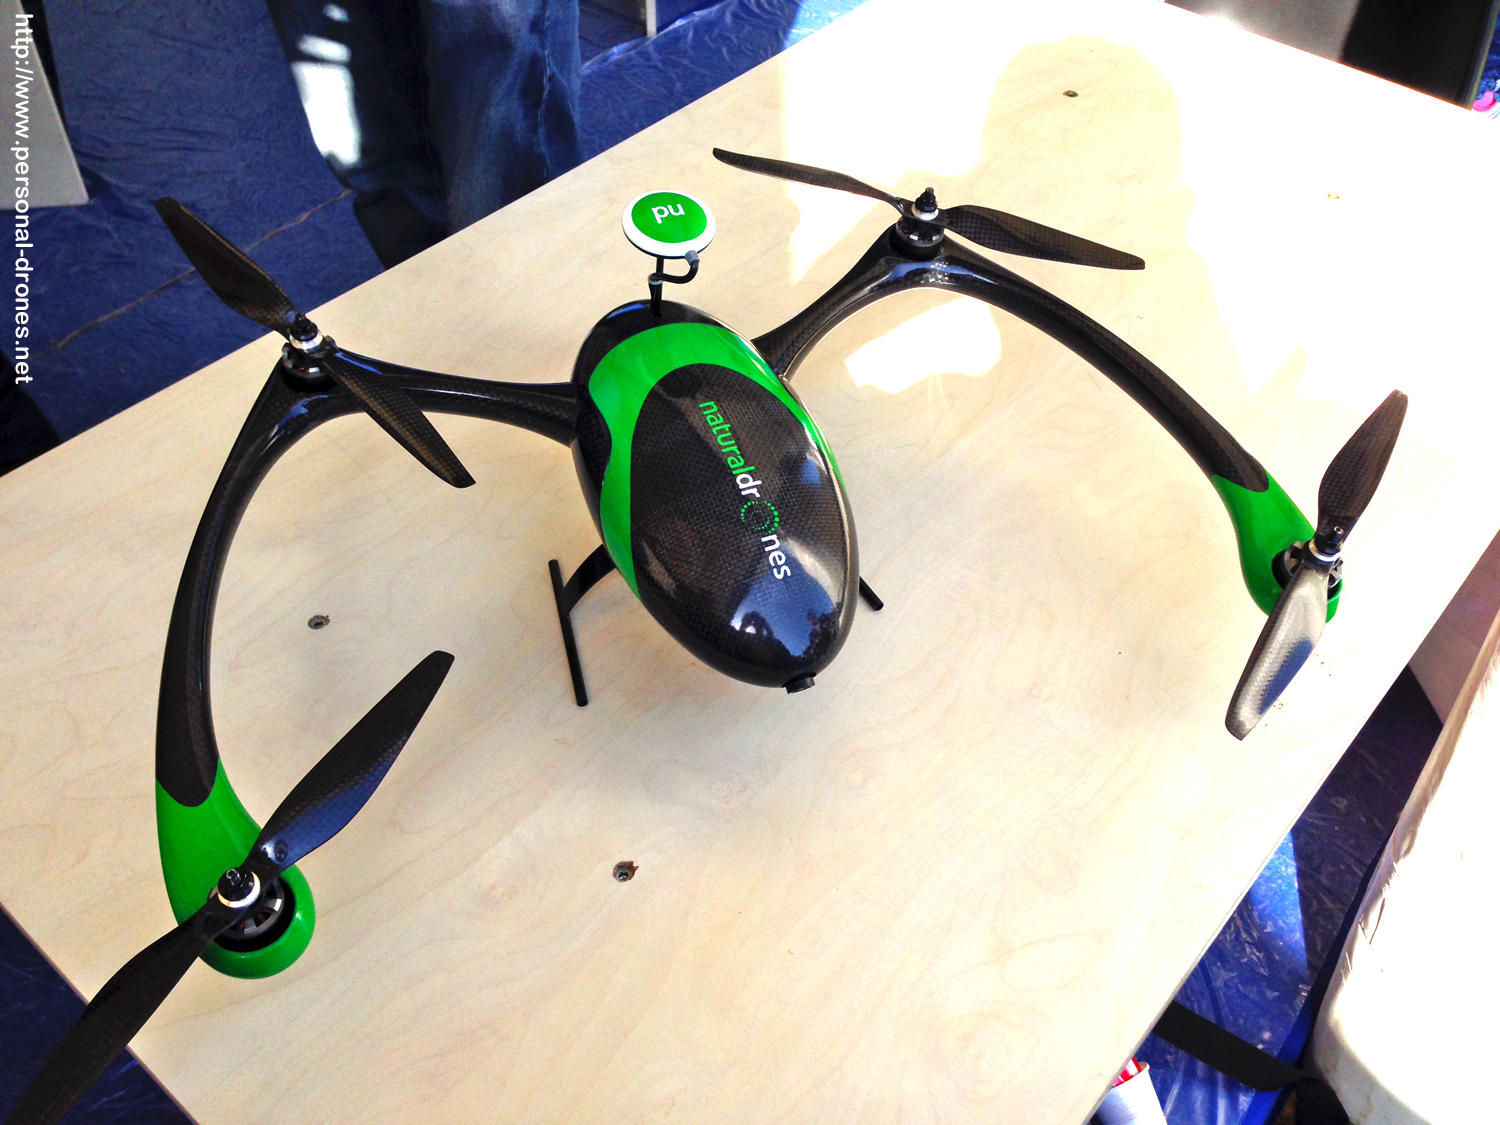 Natural Drones quadcopter. 4 motors but not 4 arms, for a change.